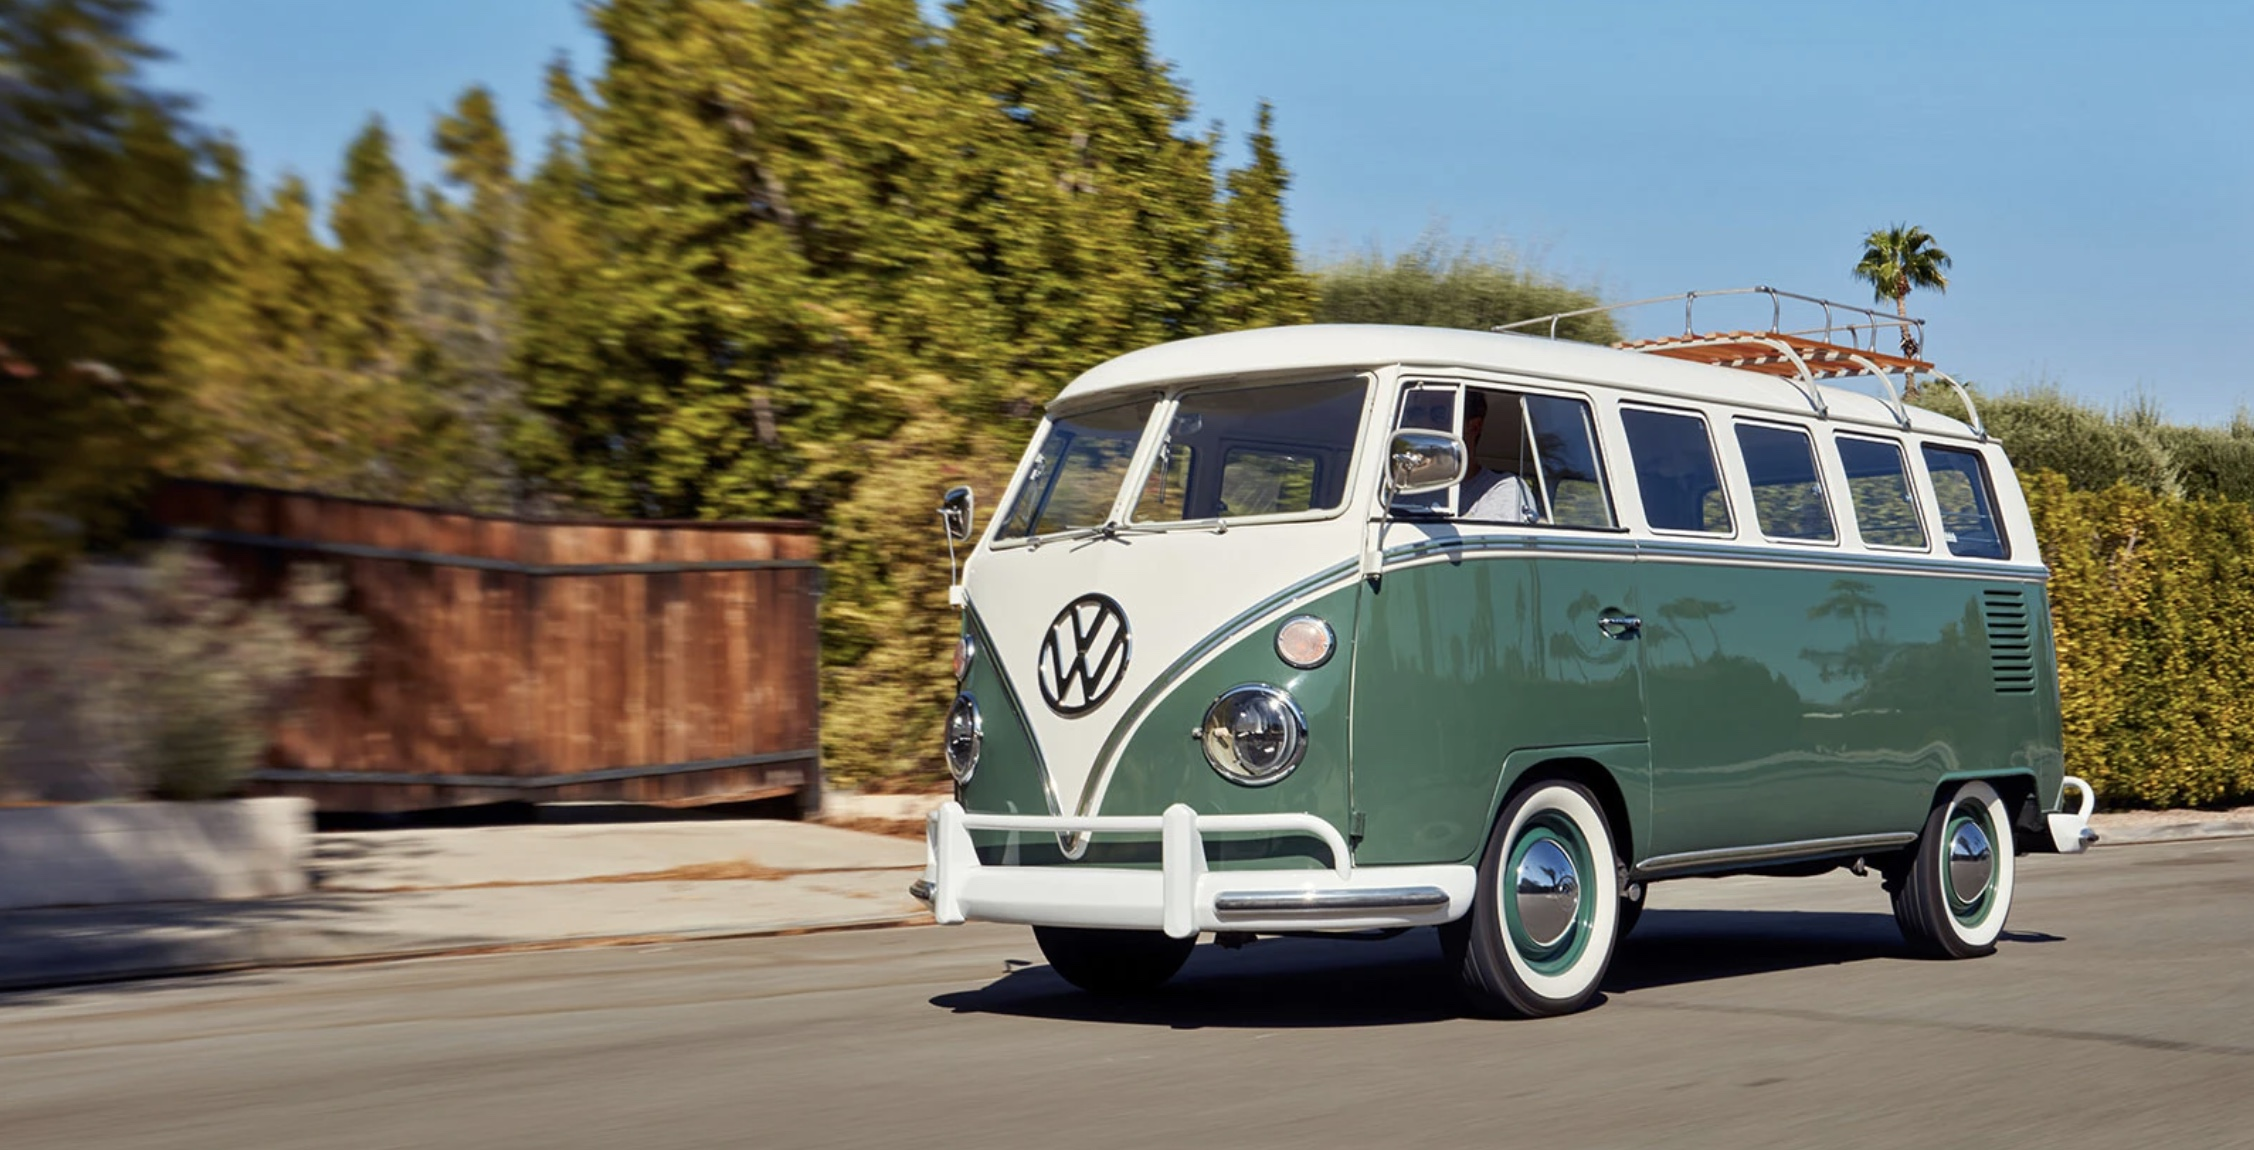 Tesla Powered Classic 1966 Vw Microbus Delivers Electric Van Life And You Can Win It Electrek